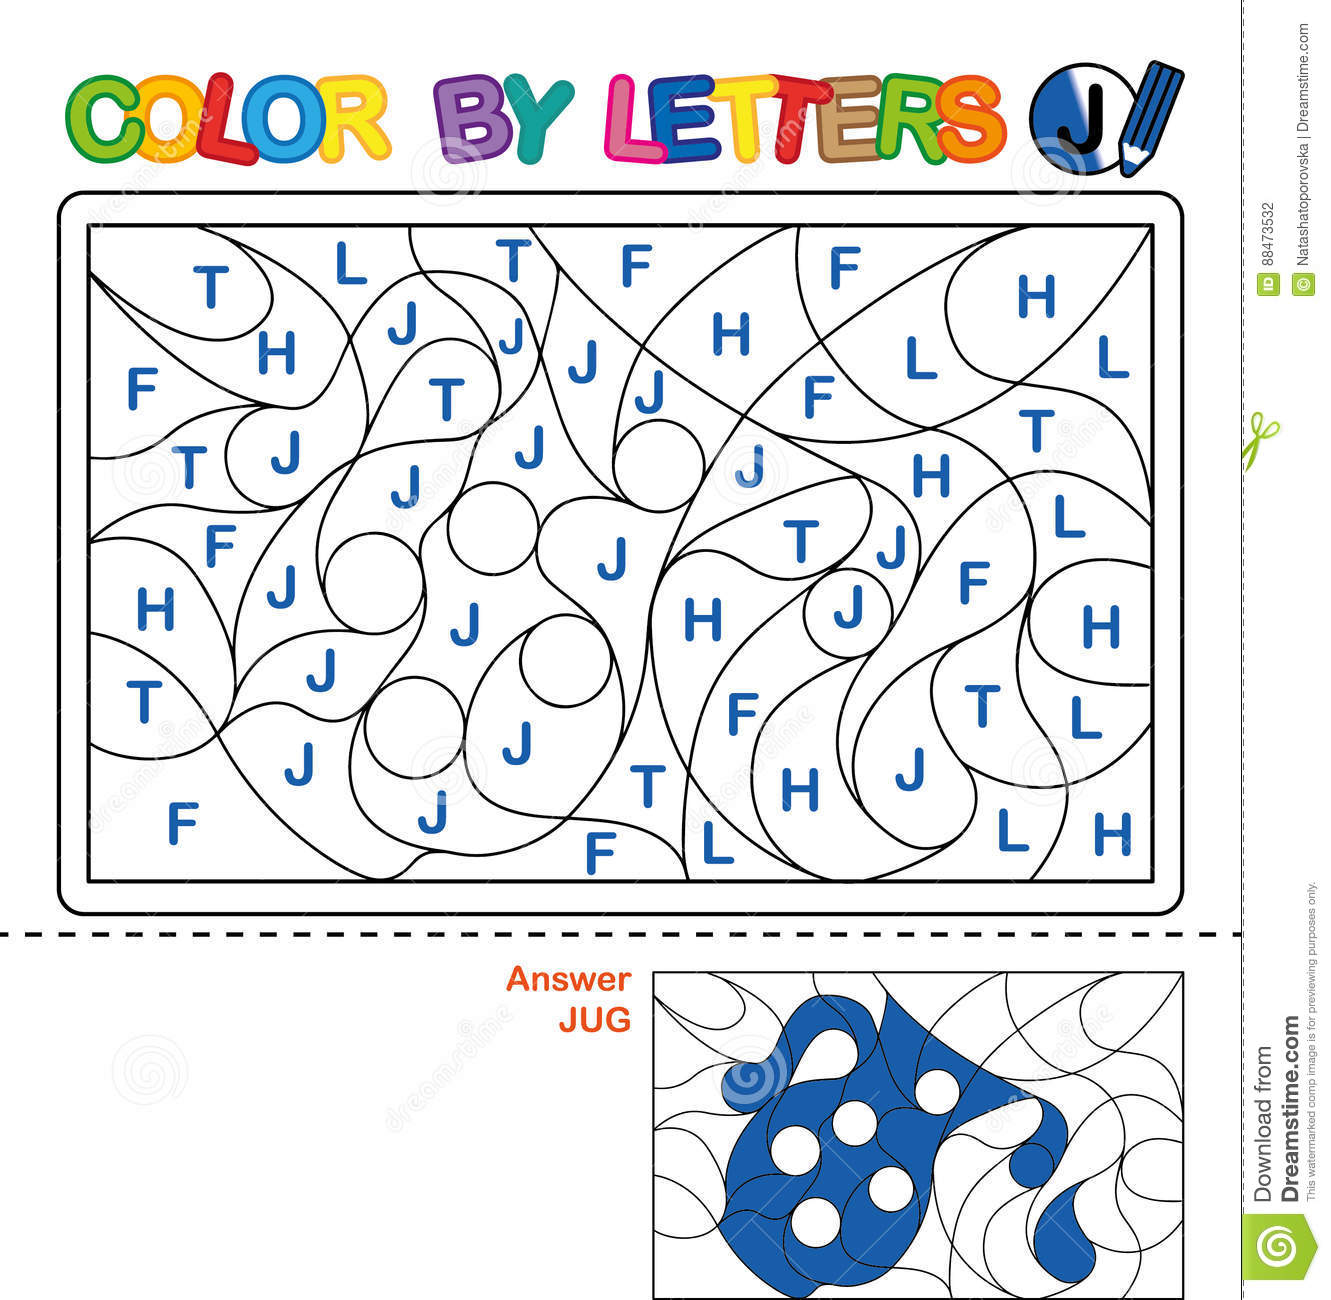 Color By Letter Puzzle For Children Jug Stock Vector